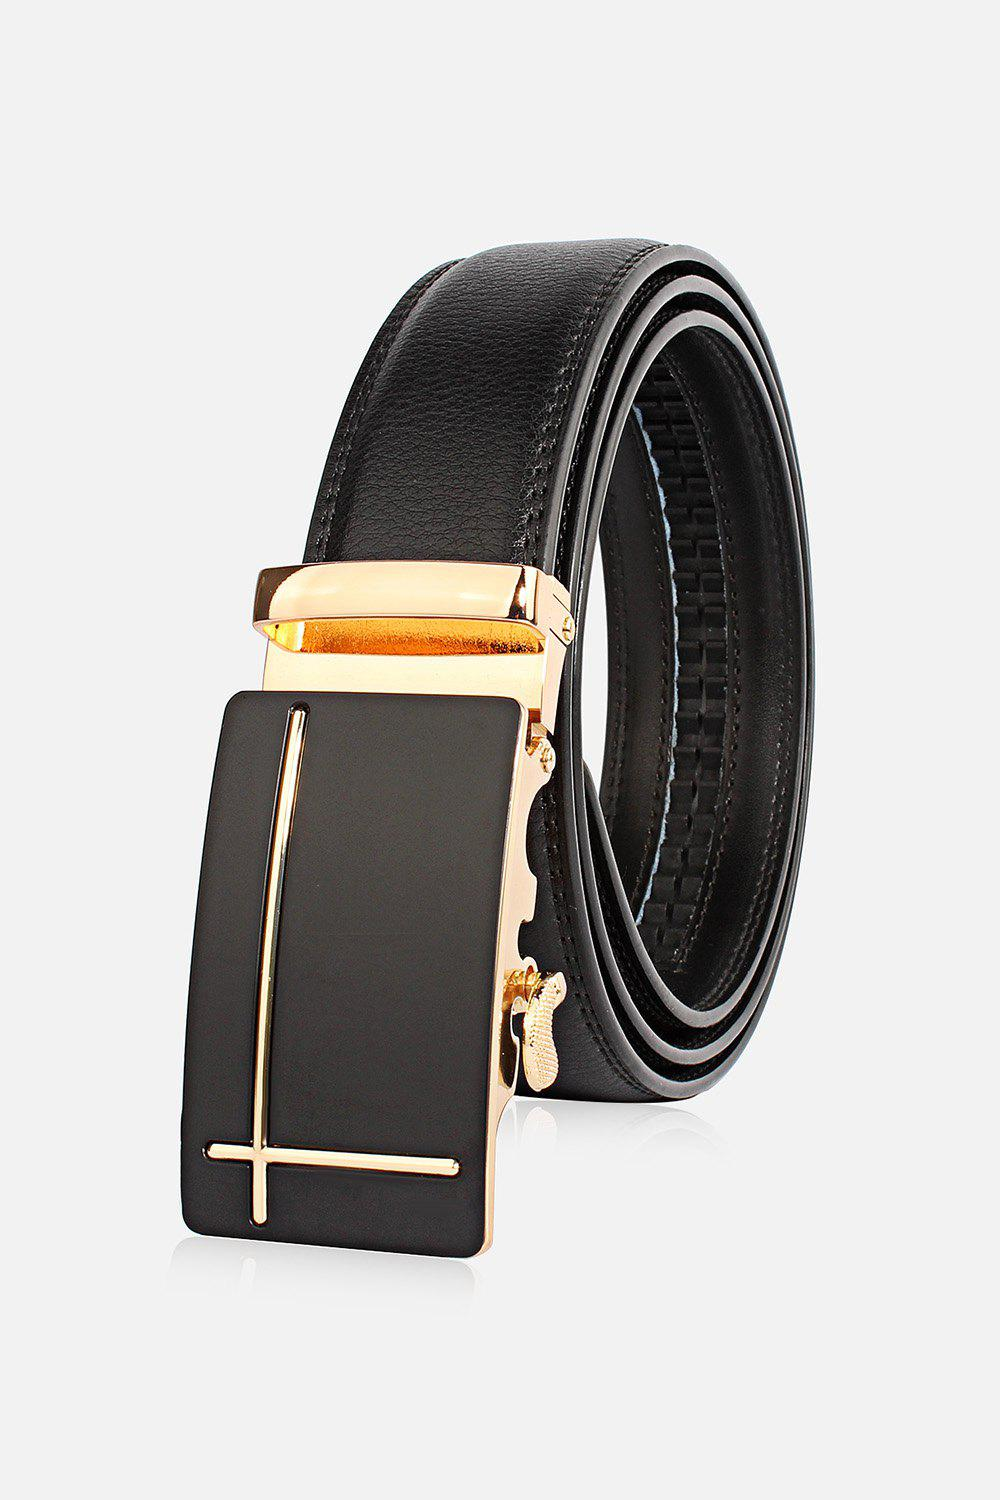 Perpendicular Line Polished Automatic Buckle Wide Belt stylish 3d y shape polished automatic buckle wide belt